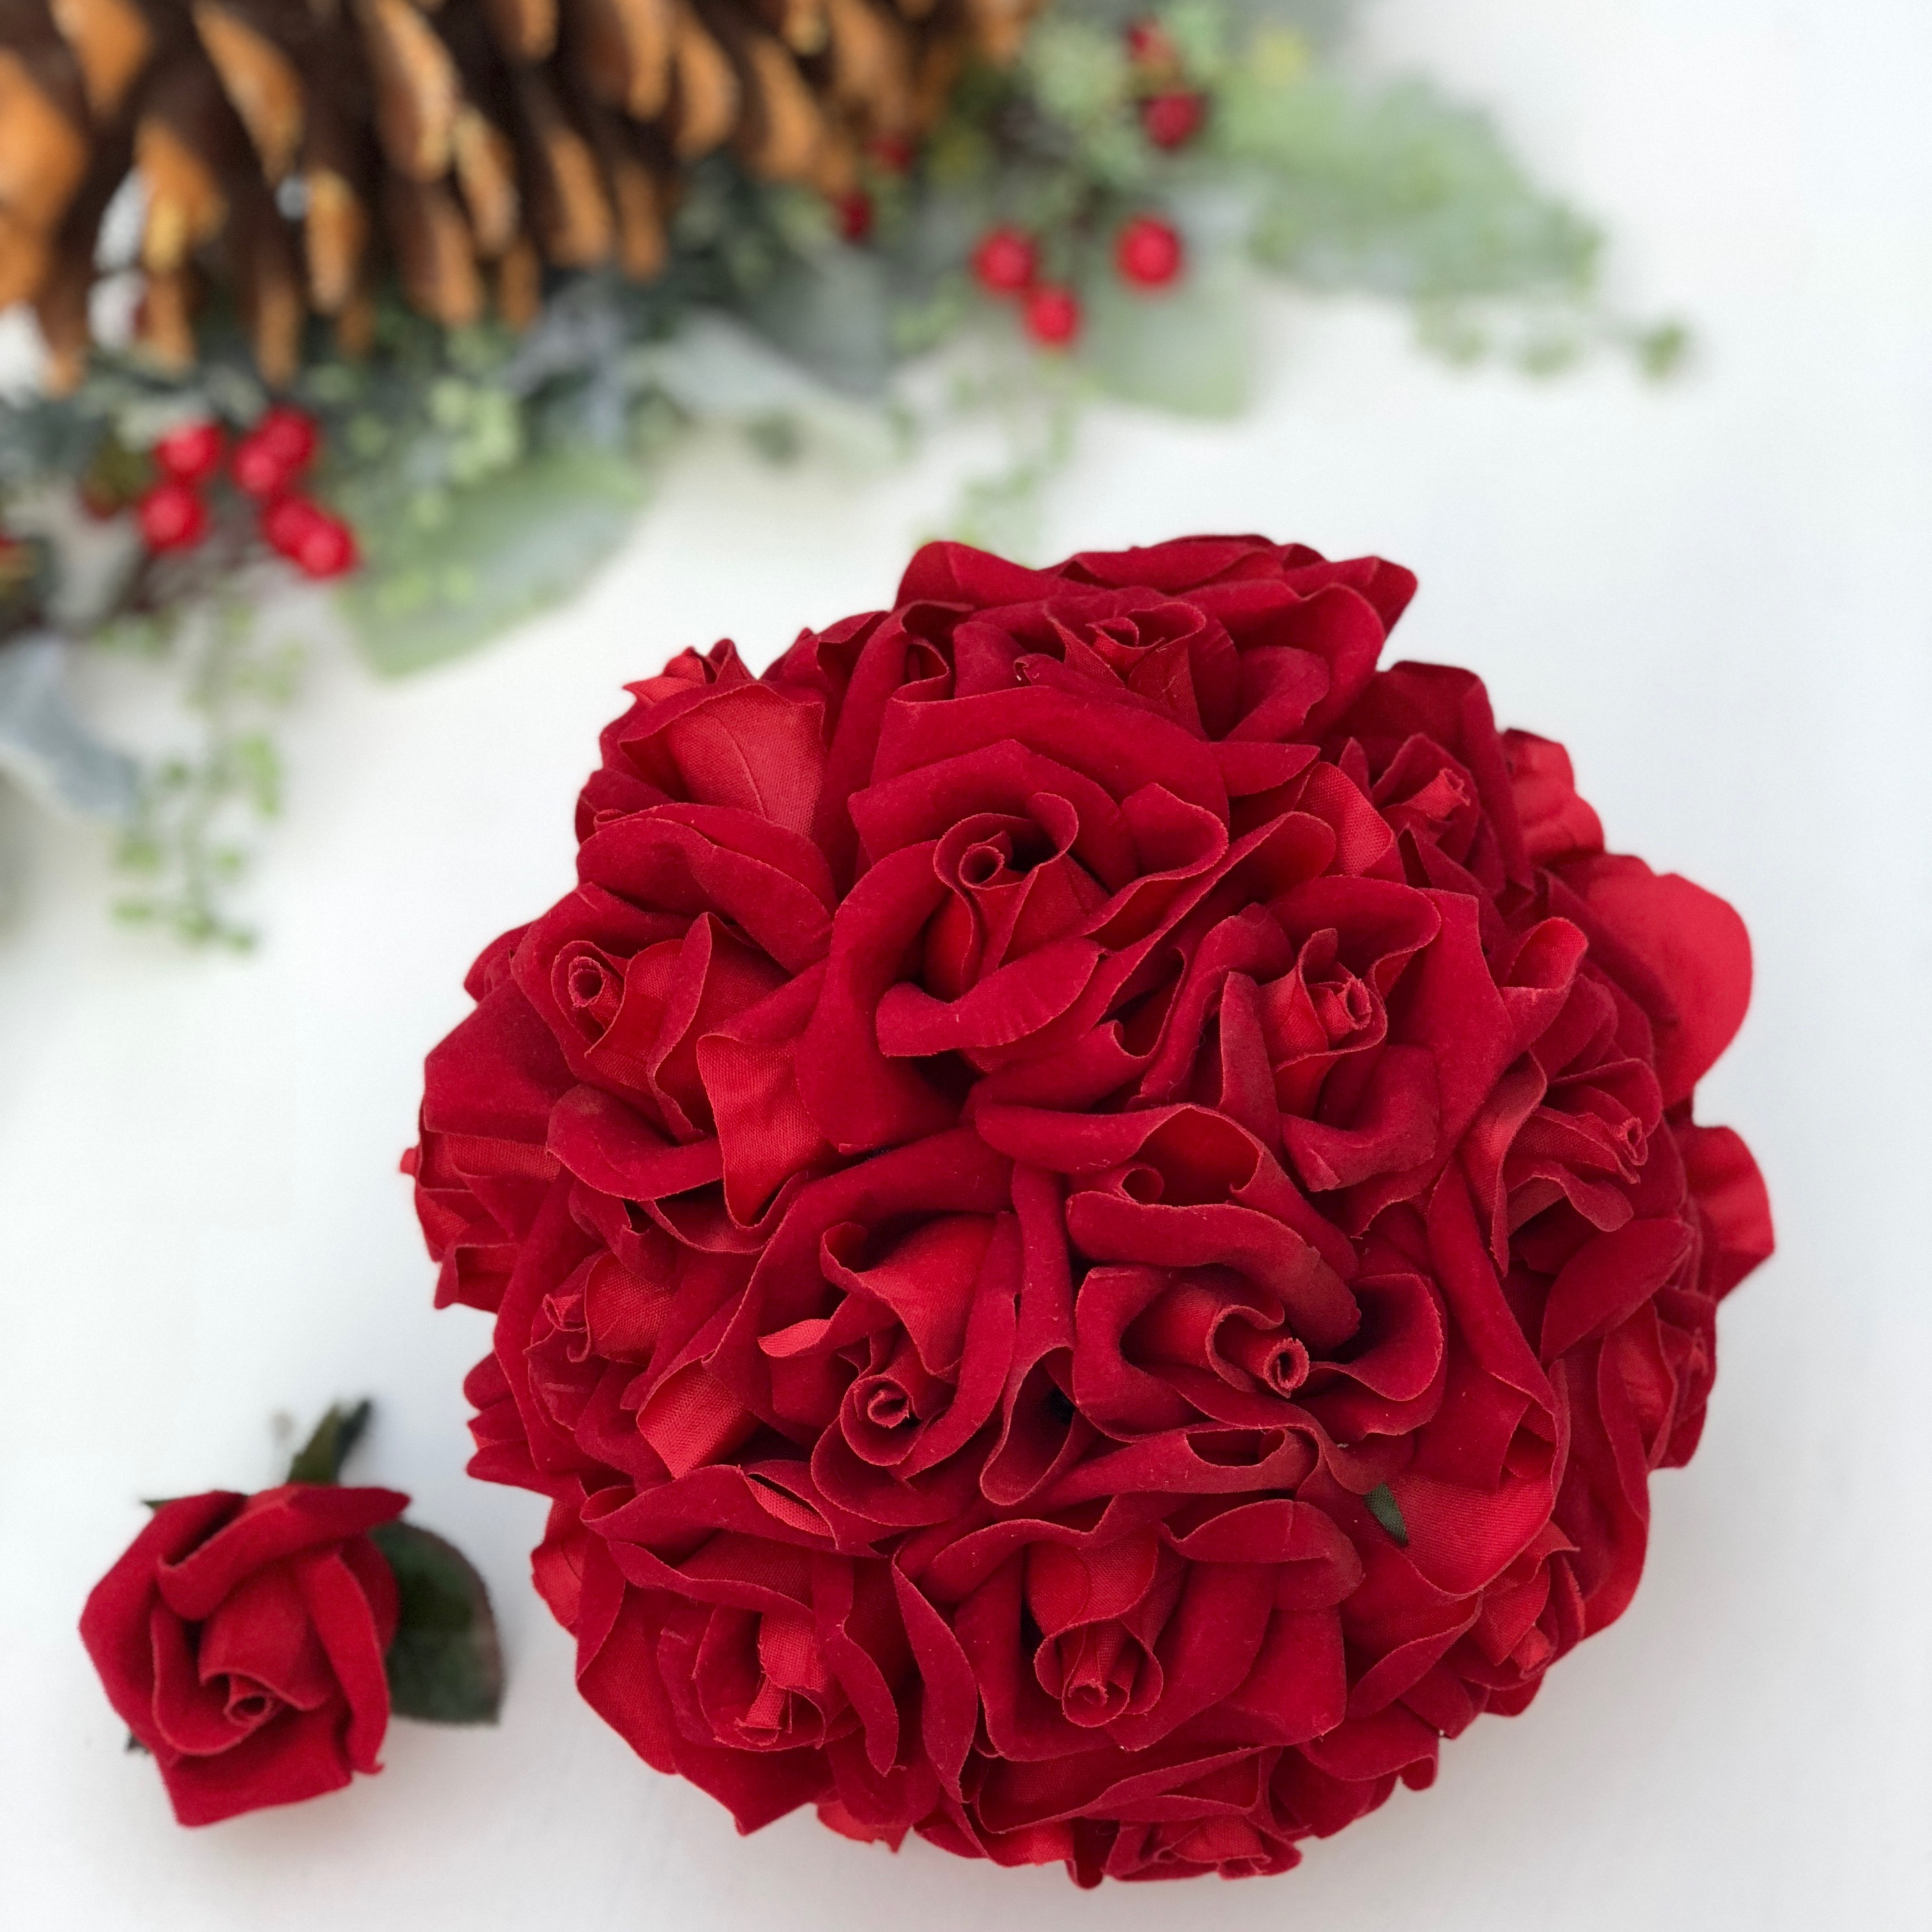 24 Red Velvet rose silk wedding flower bouquet